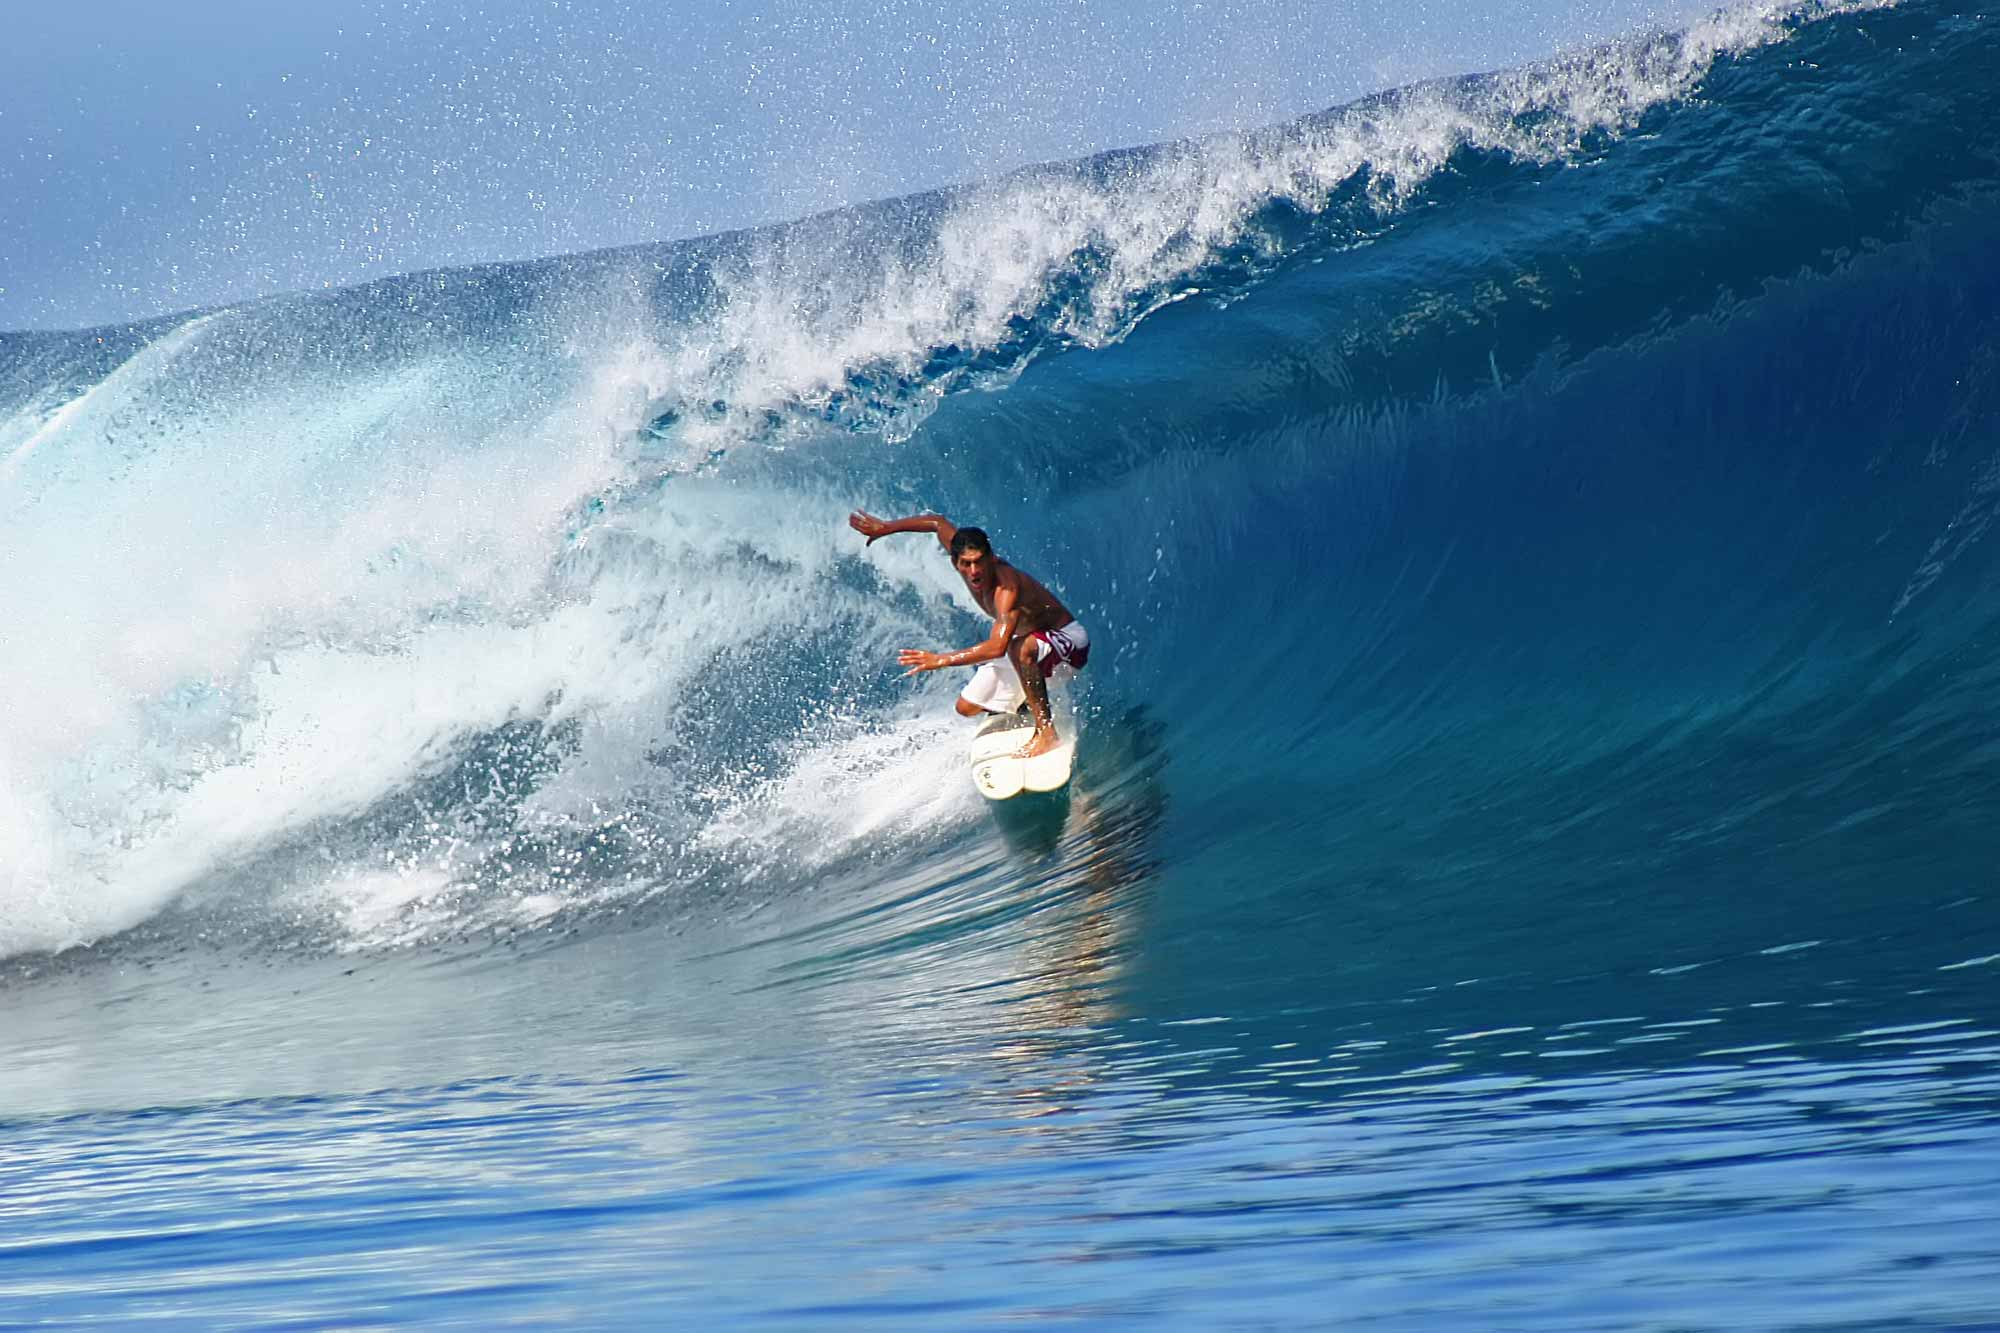 surfer-perfect-wave-teahupoo-tahiti